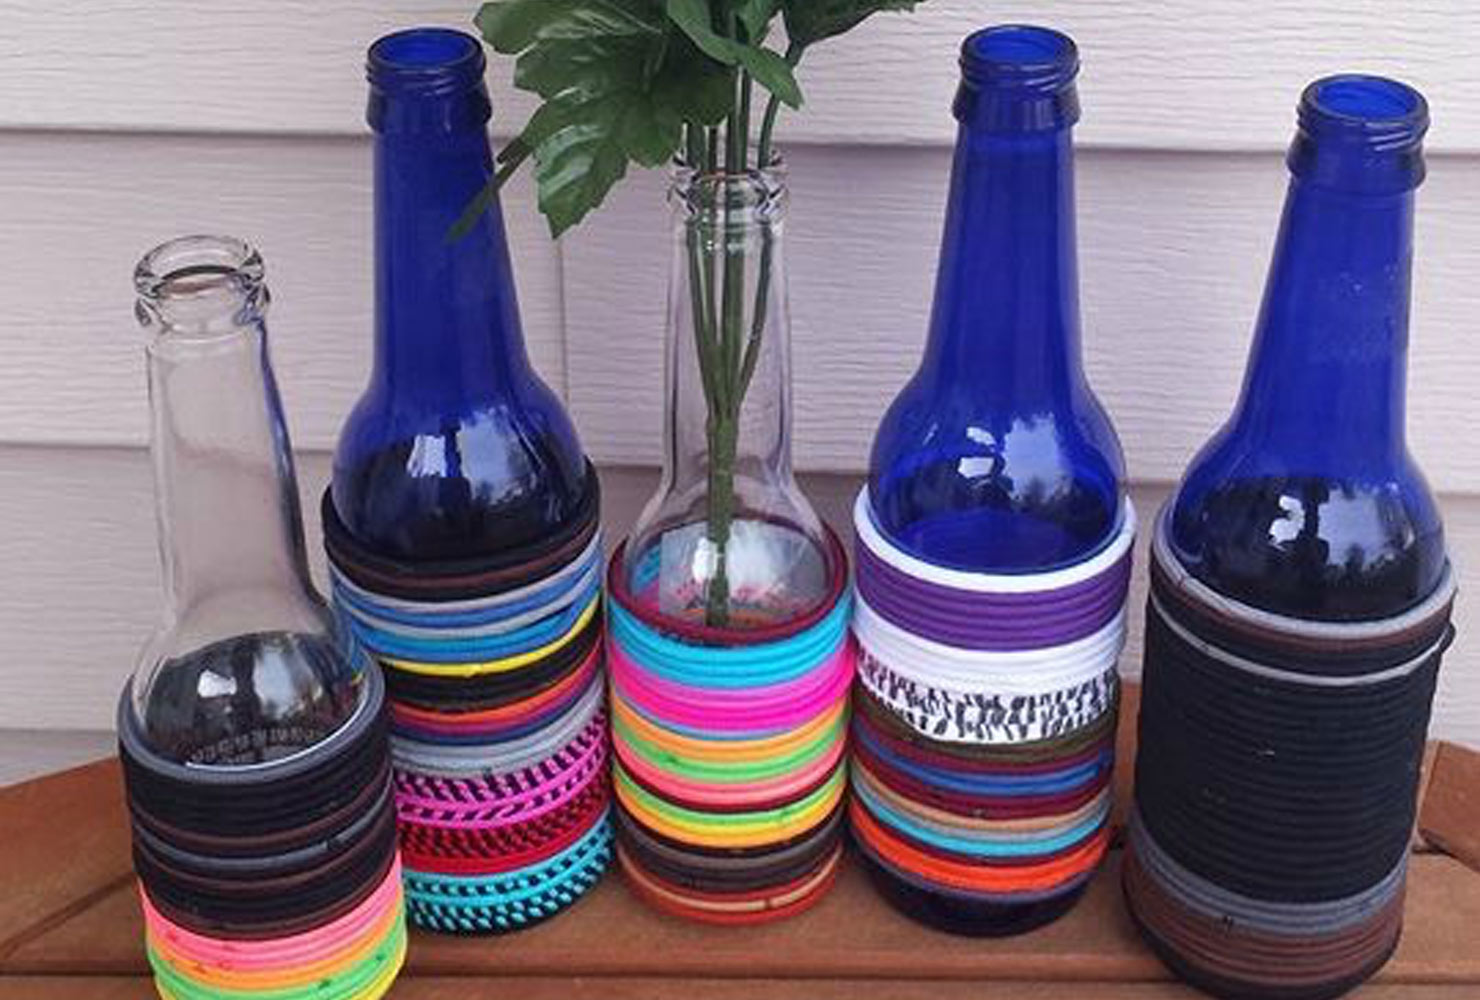 hair ties on a beer bottle